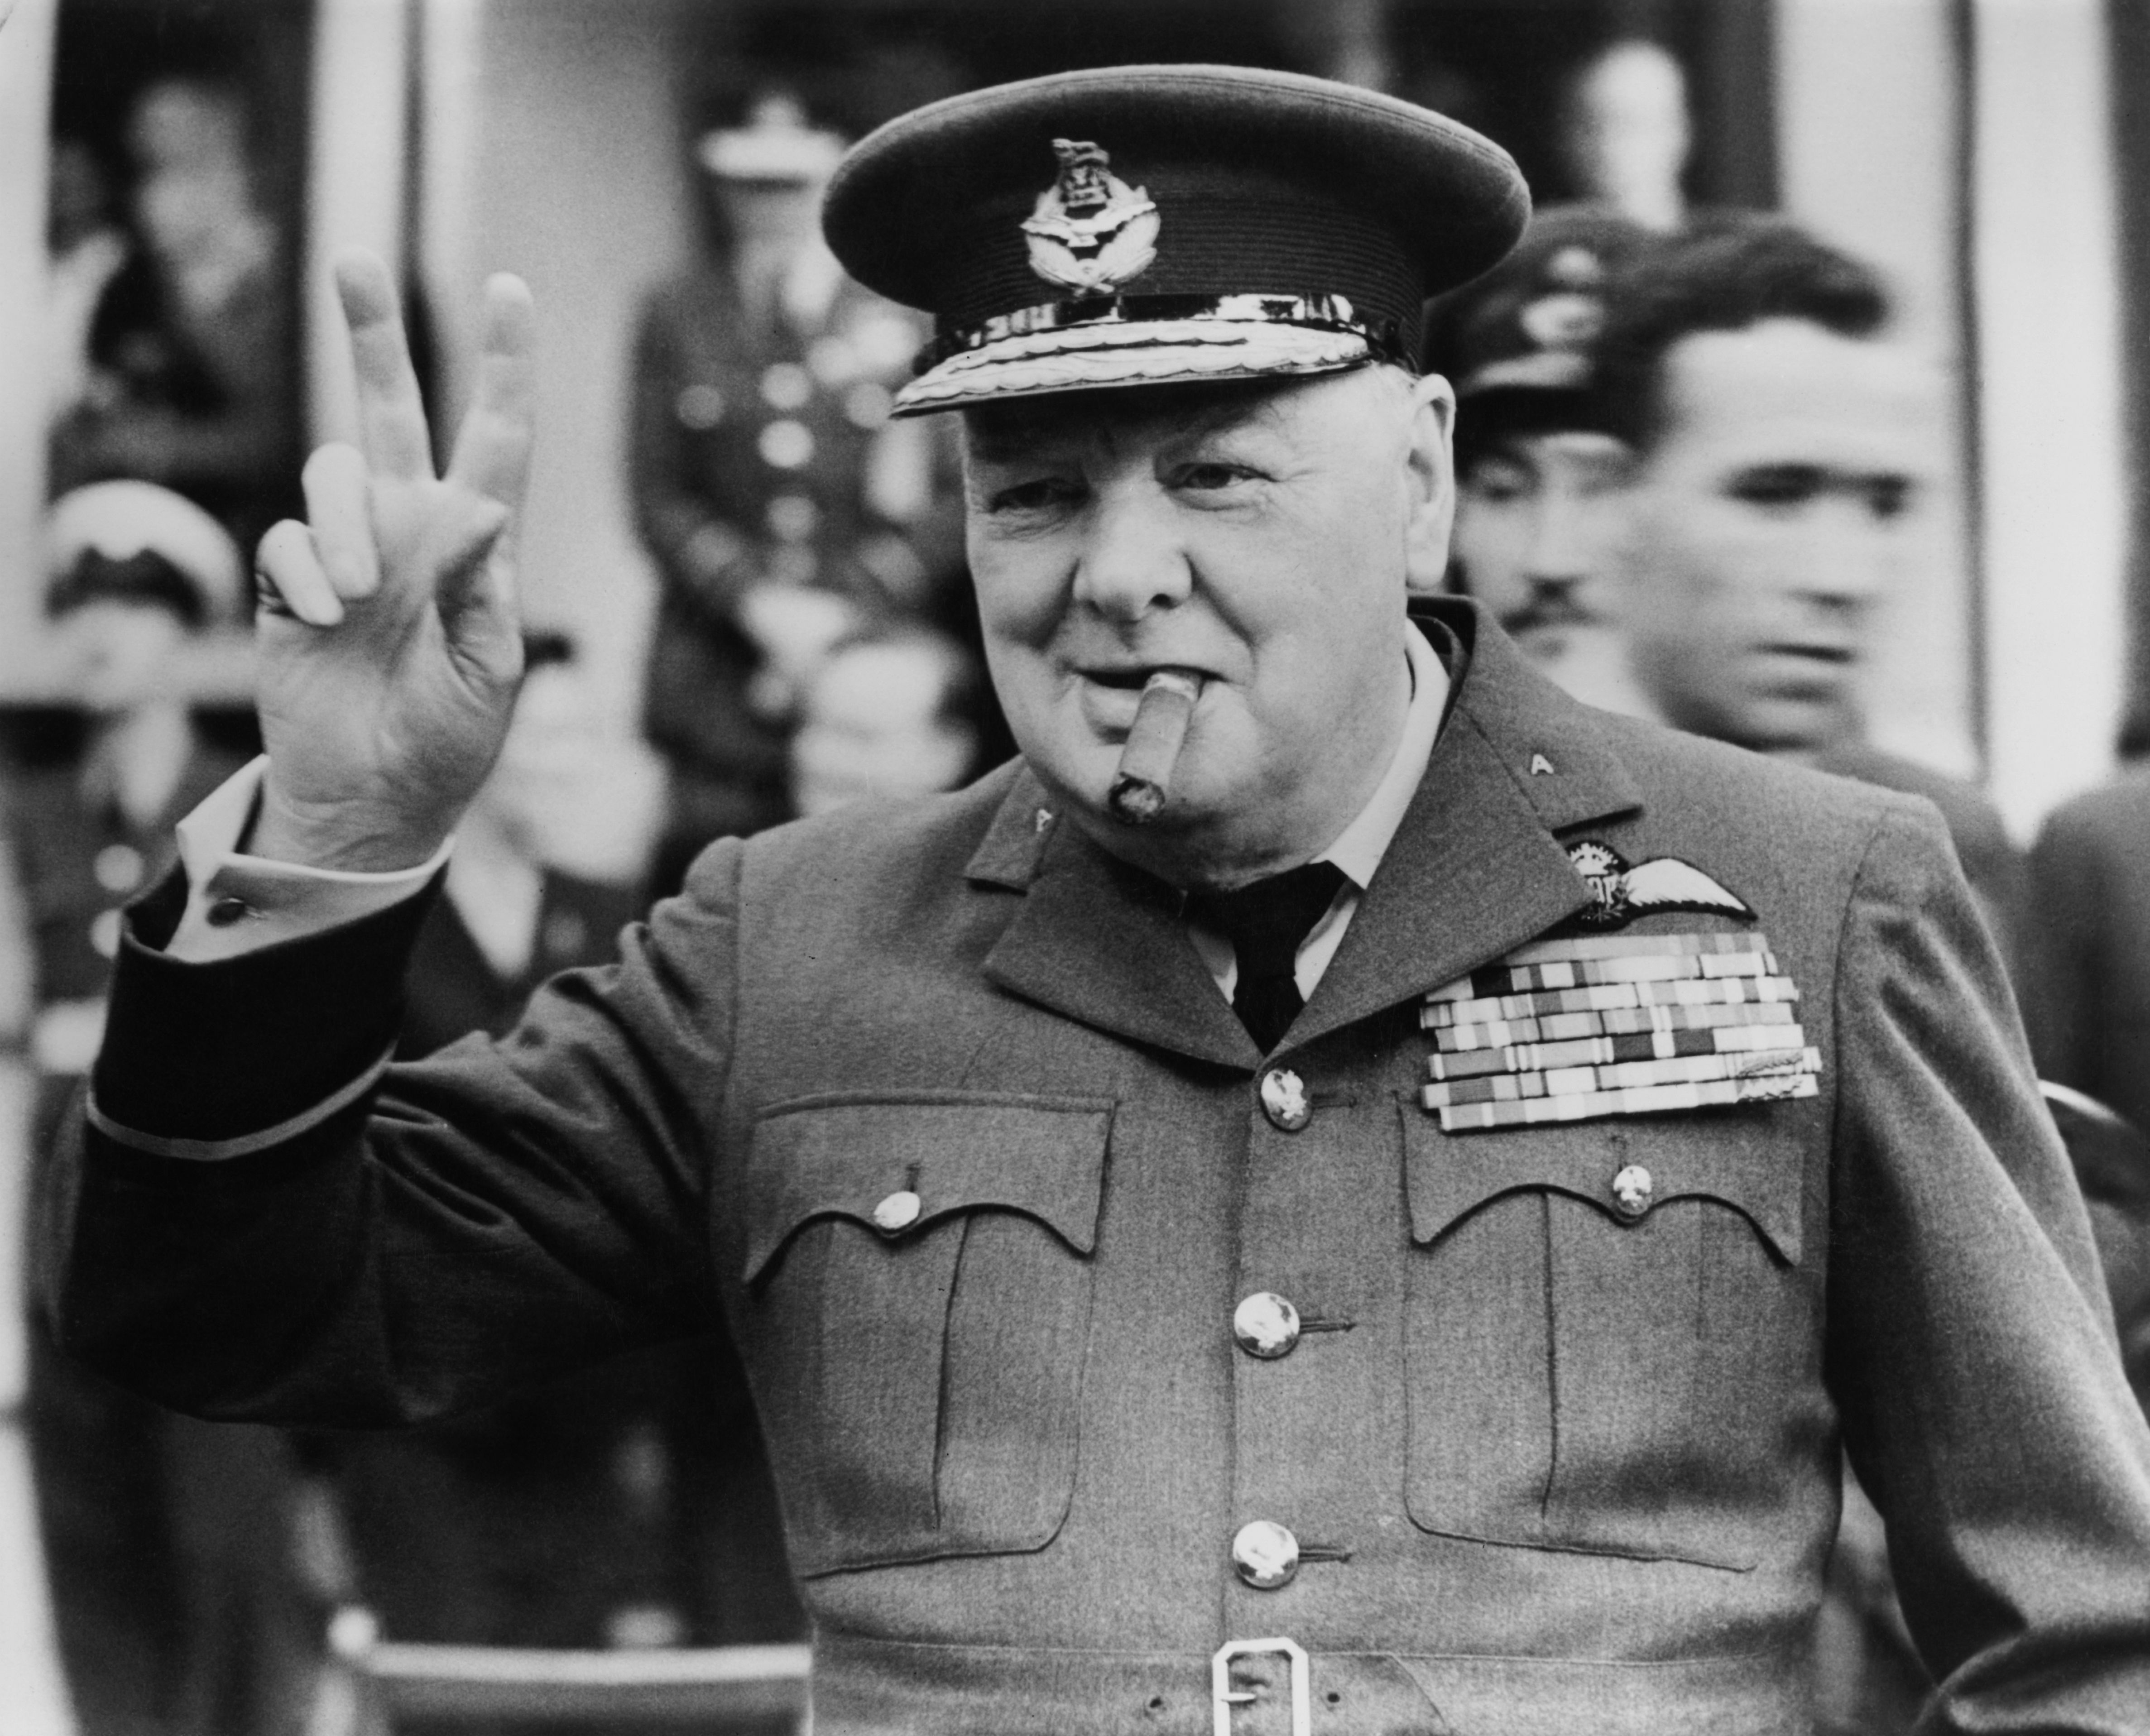 Churchill making peace sign in military outfit, in Croydon